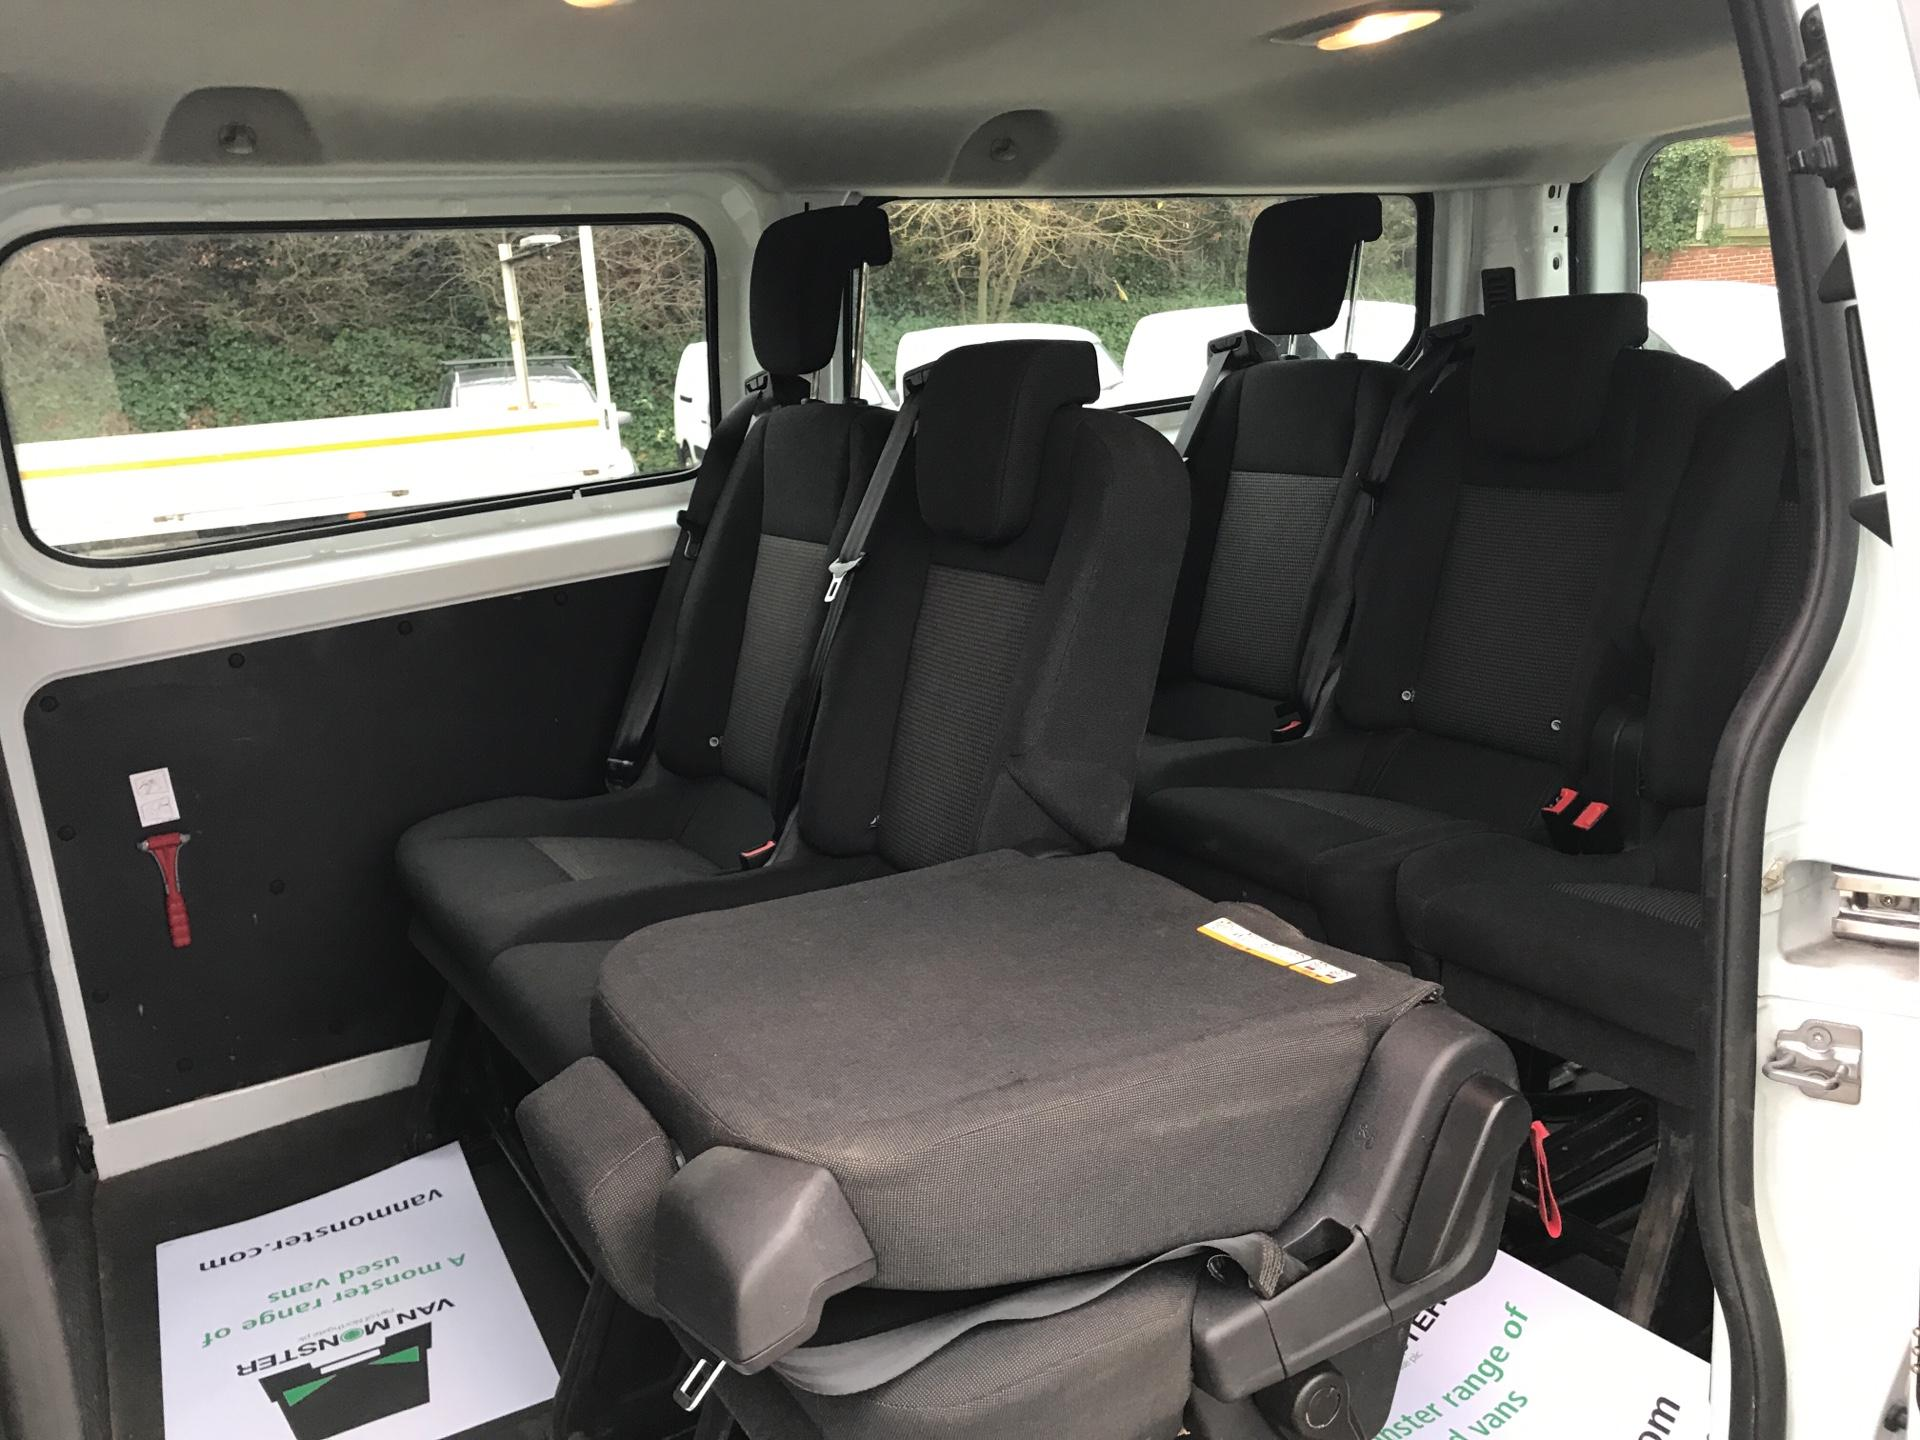 2015 Ford Transit Custom 2.2 Tdci 125Ps Low Roof Kombi Van euro 5 - VALUE RANGE - CONDITION REFLECTED IN PRICE  (FL15XJE) Image 19